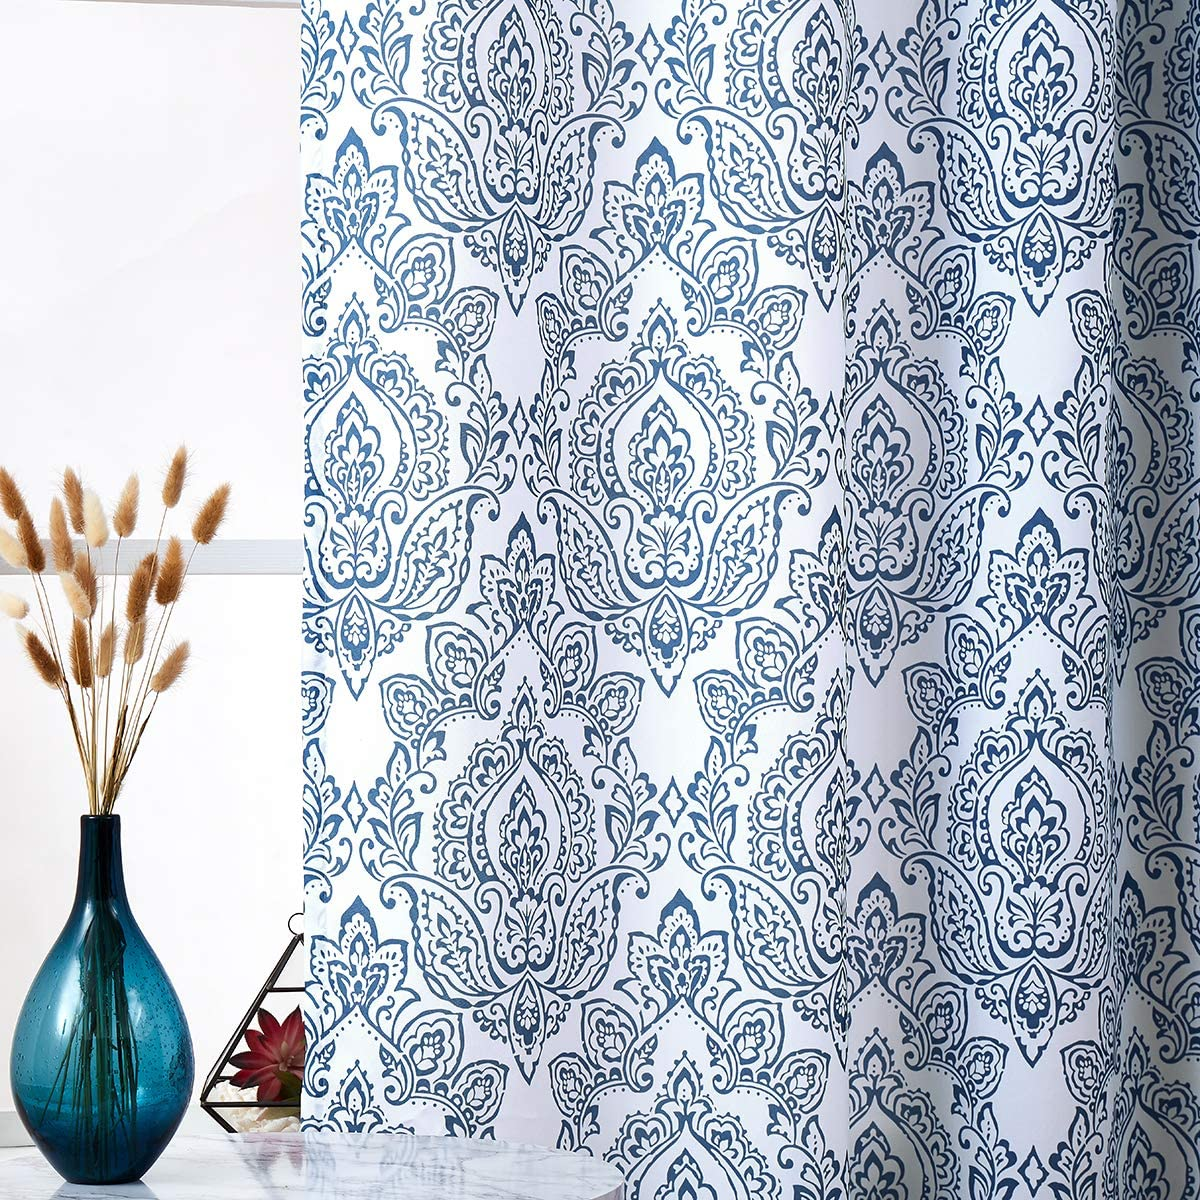 White Blue Curtains for Living Room 84 Inch Long Vintage Damask Printed Window Curtain Panels for Bedroom Grommet Top Floral Pattern Draperies 2 Pcs